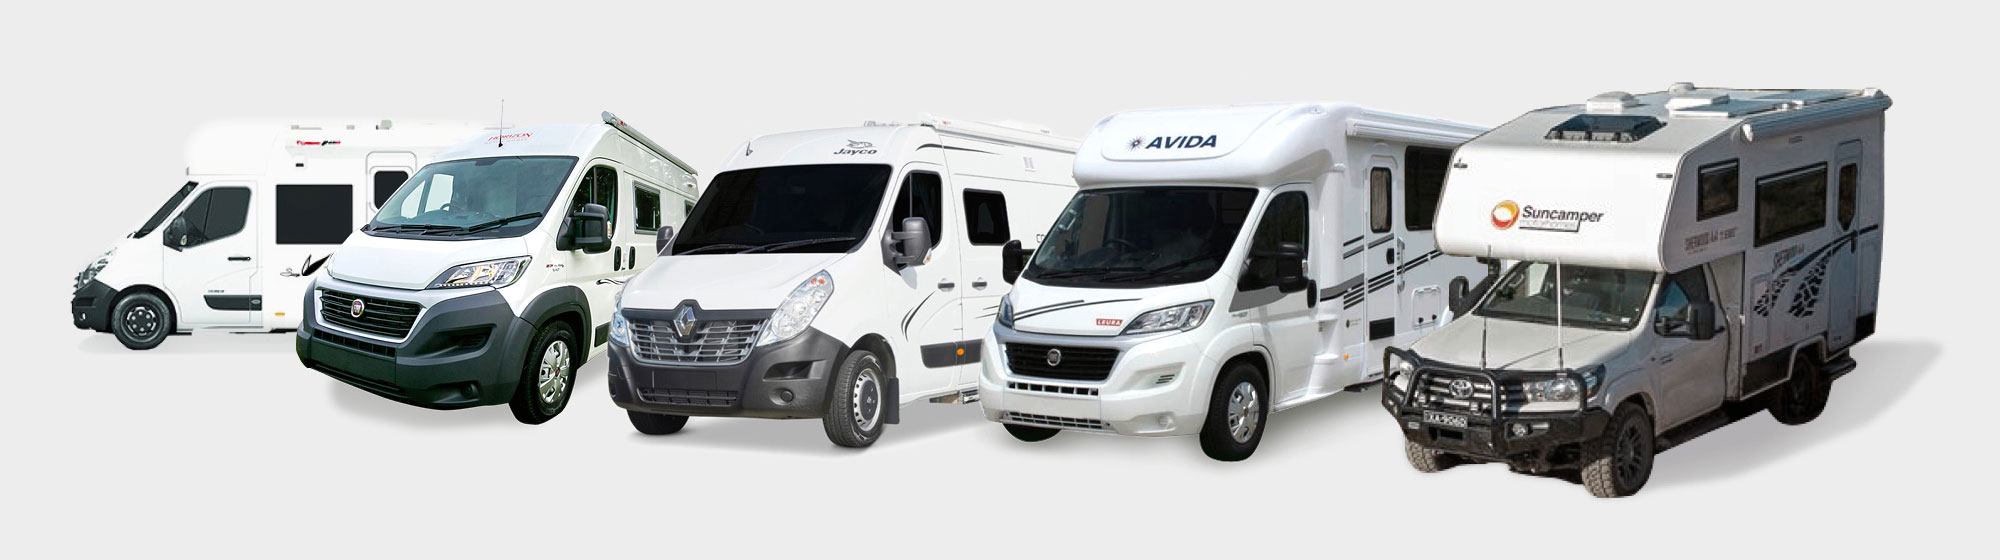 Buying right: Five entry-level motorhomes